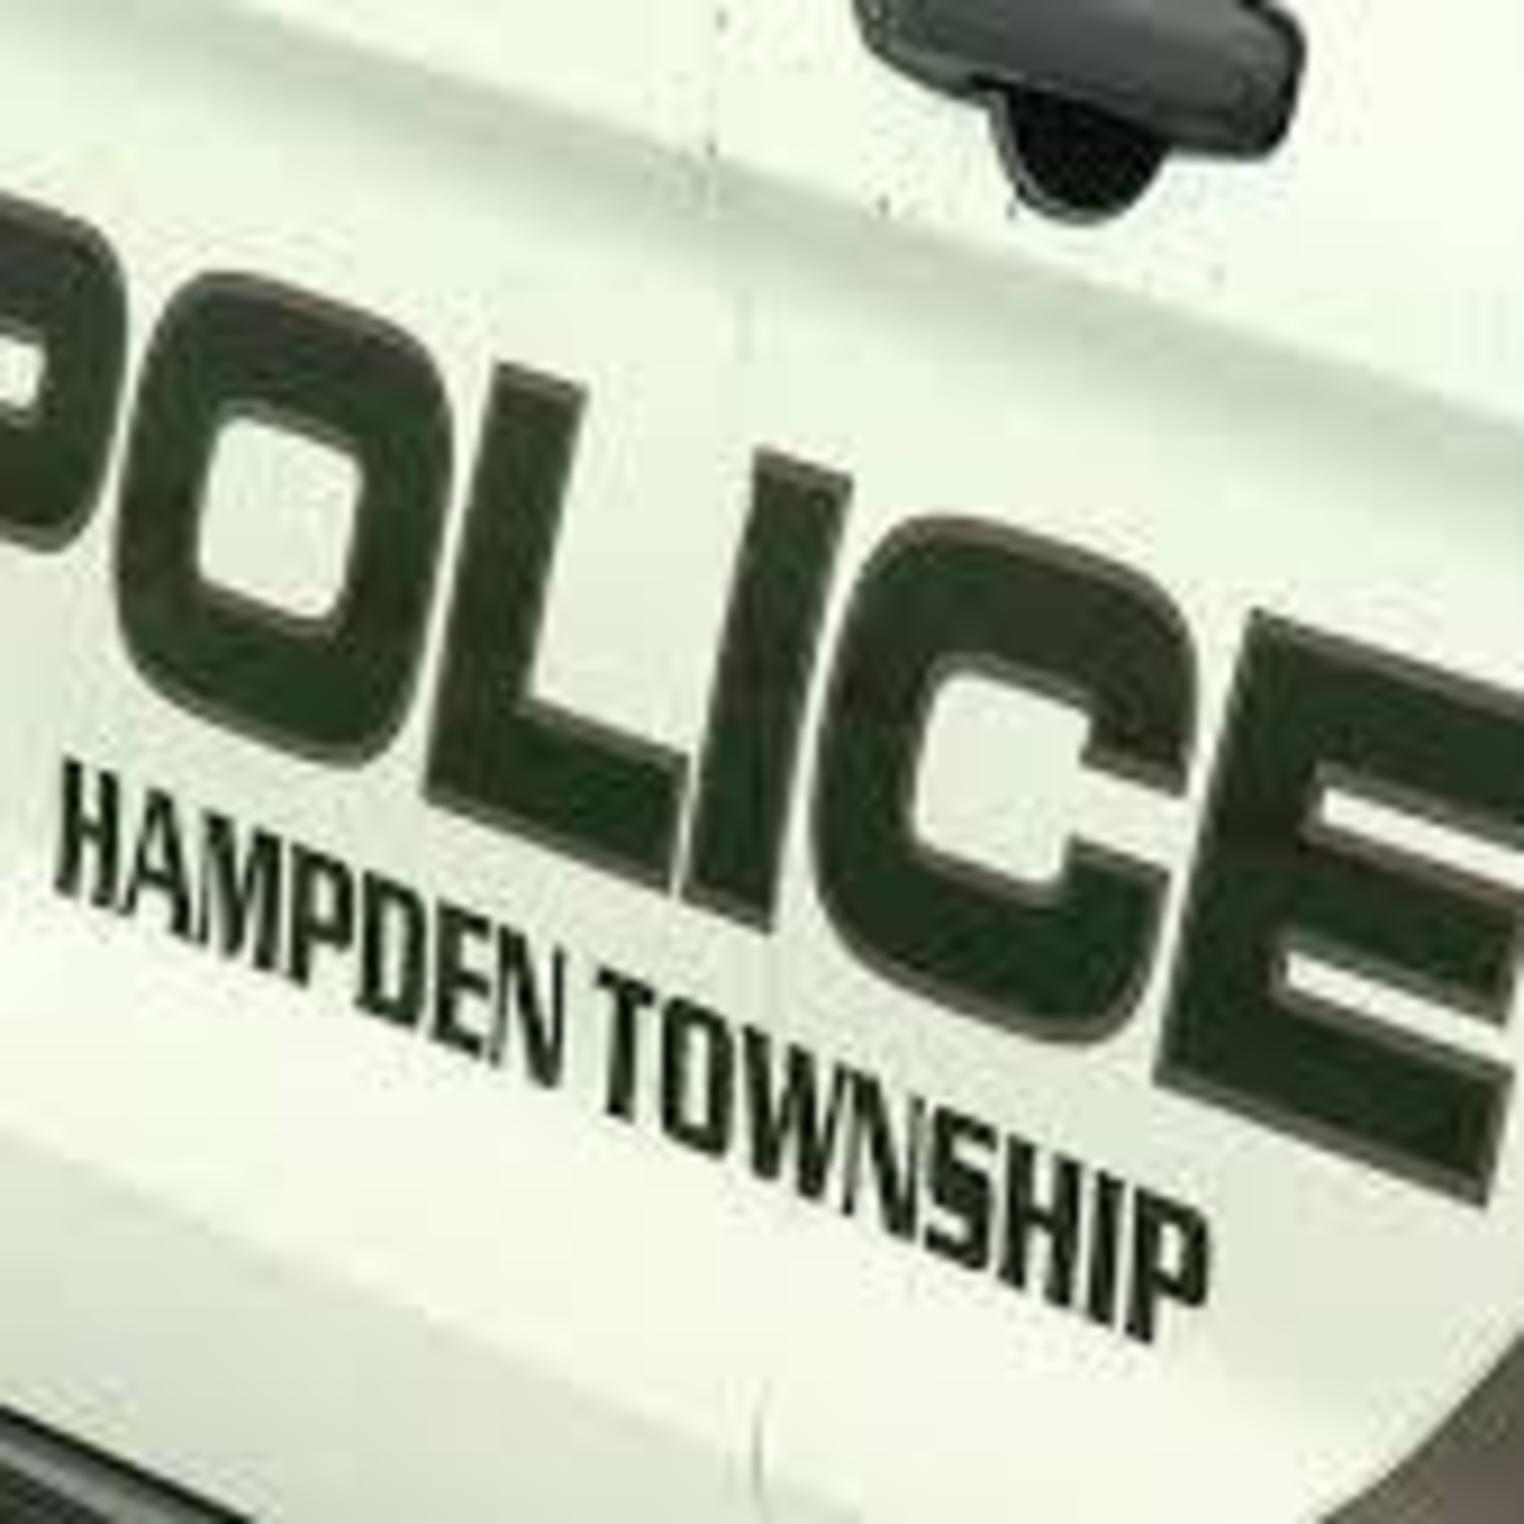 Hampden Township Police Department